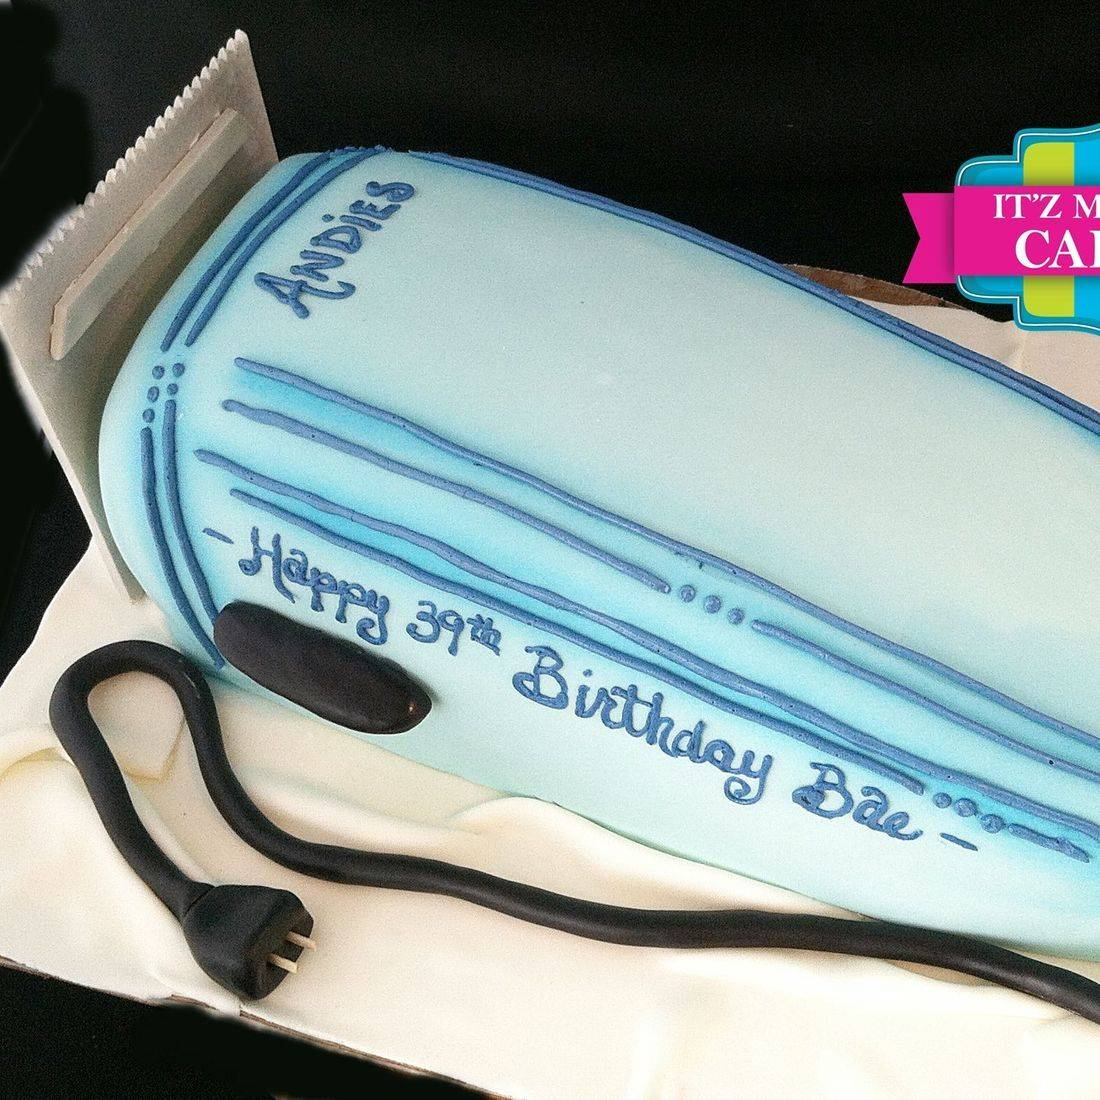 Blue Trimmer Cake Carved Dimensional Cake Milwaukee